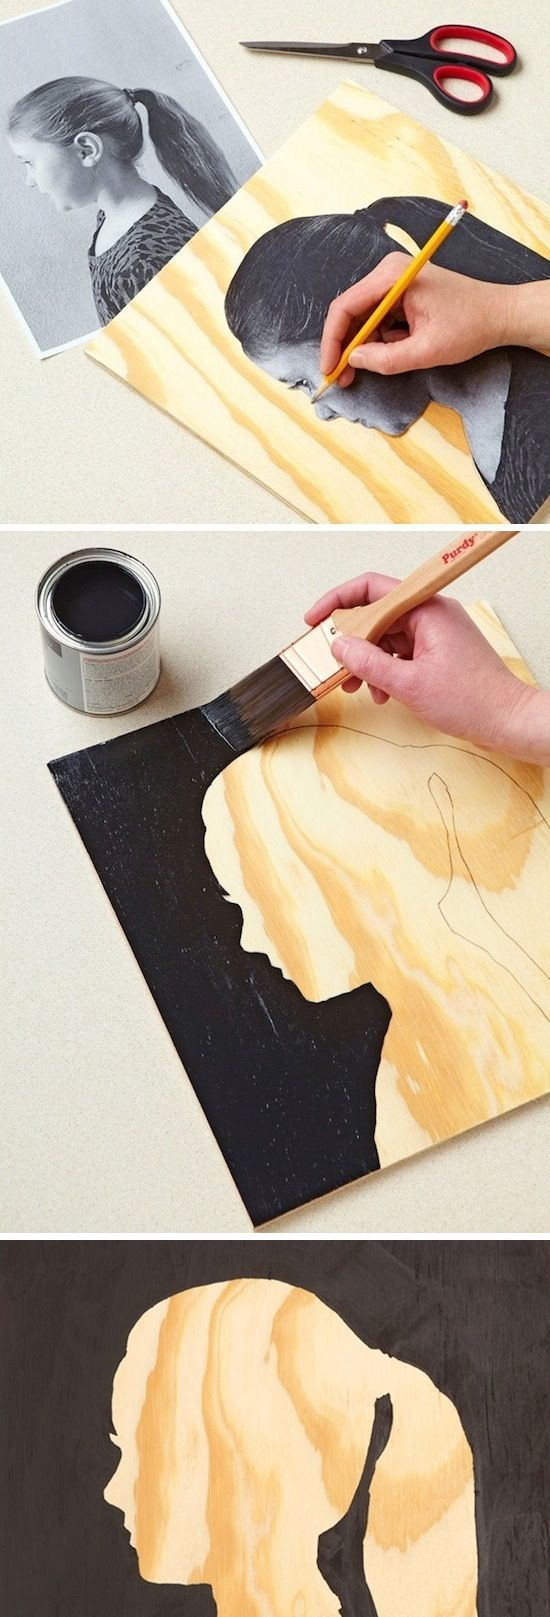 Easy Silhouette DIY Wall Art                                                                                                                                                      More: